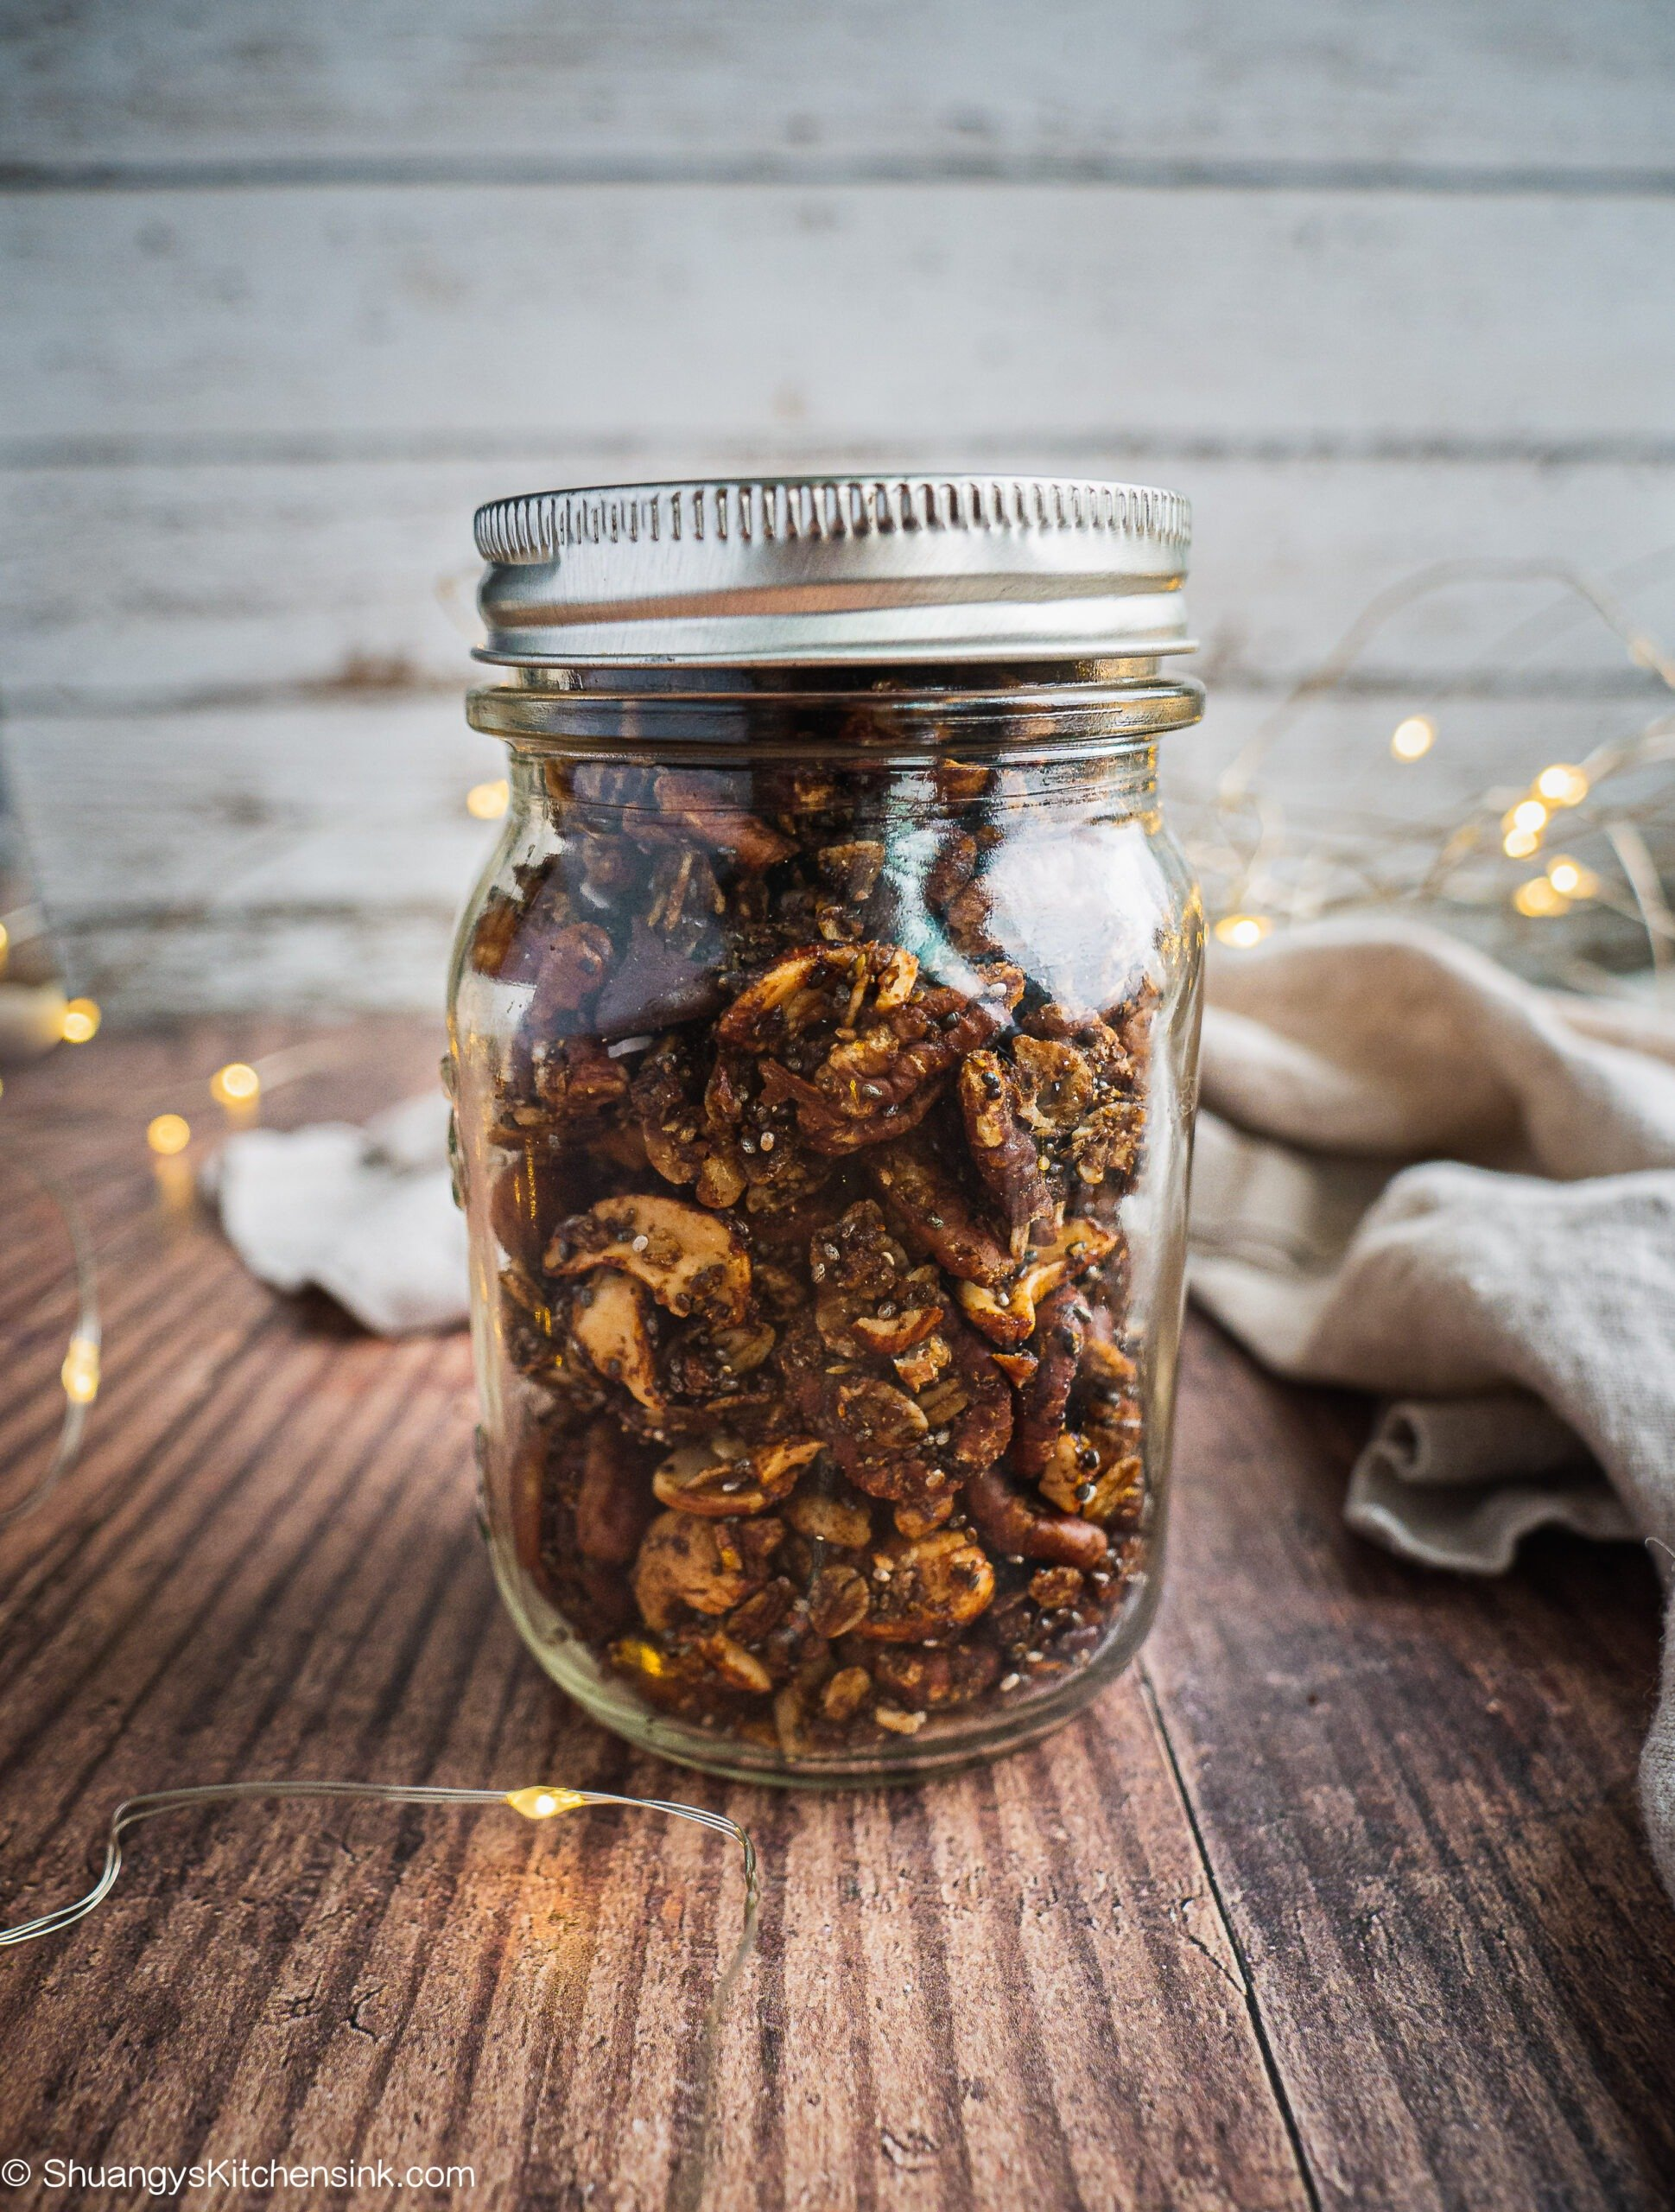 The picture shows how you can store the nut based  paleo gingerbread granola in a mason jar with an air-tight cap. There is Christmas lights in the background.